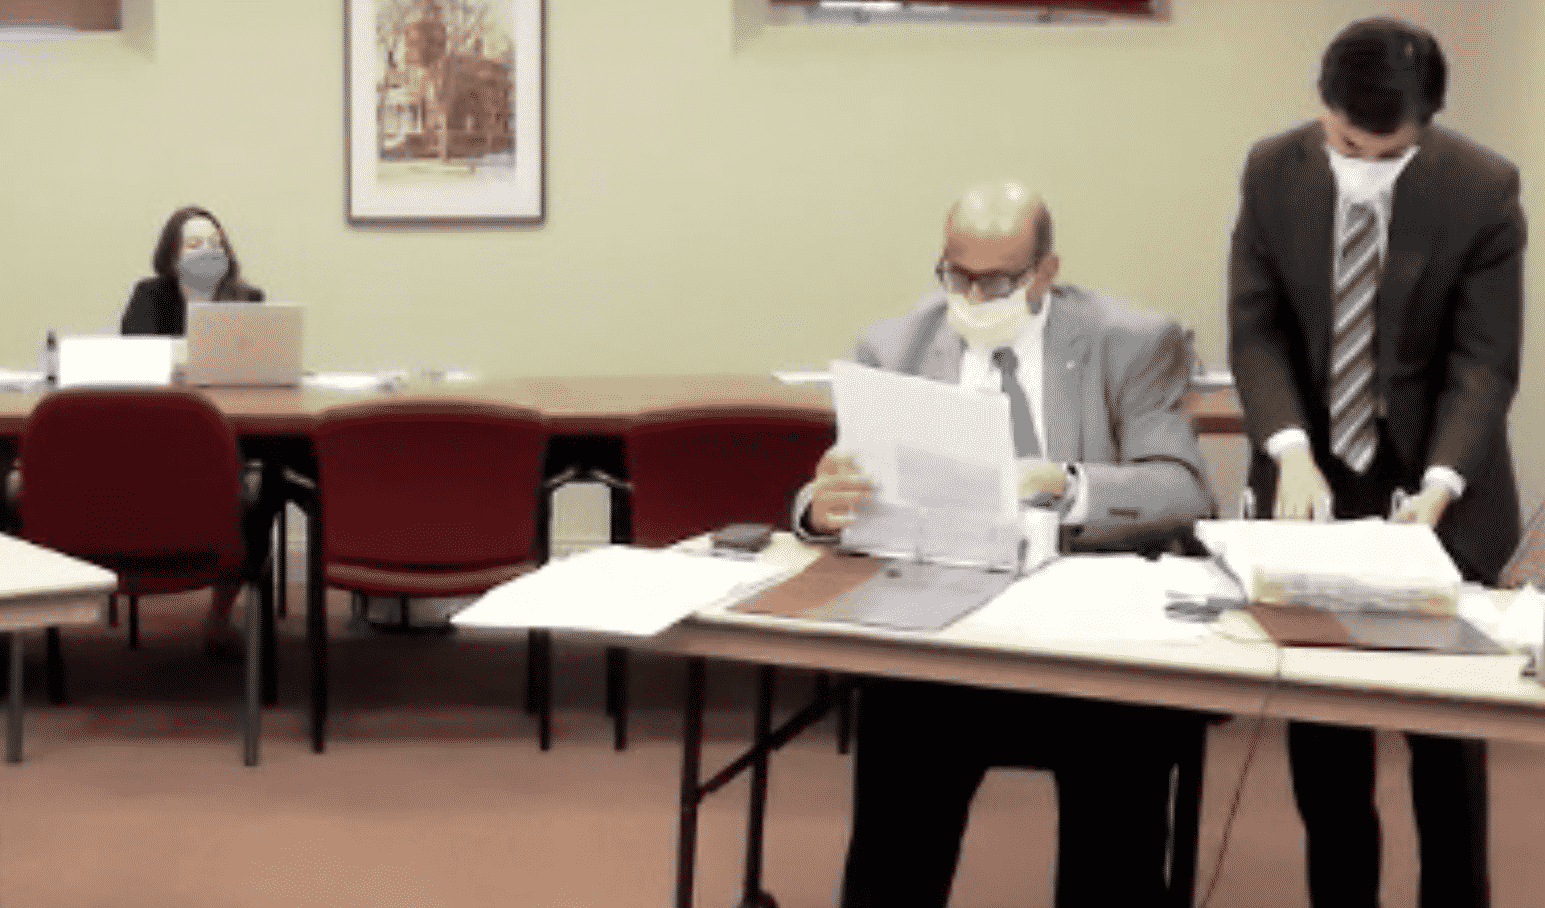 [CREDIT: City of Warwick] From left, Michael D'Amico, finance consultant, and Mayor Joseph J. Solomon search the budget in search of the answer to a budget question May 27 during budget hearings. The night was noteworthy for several questions the Mayor did not answer.